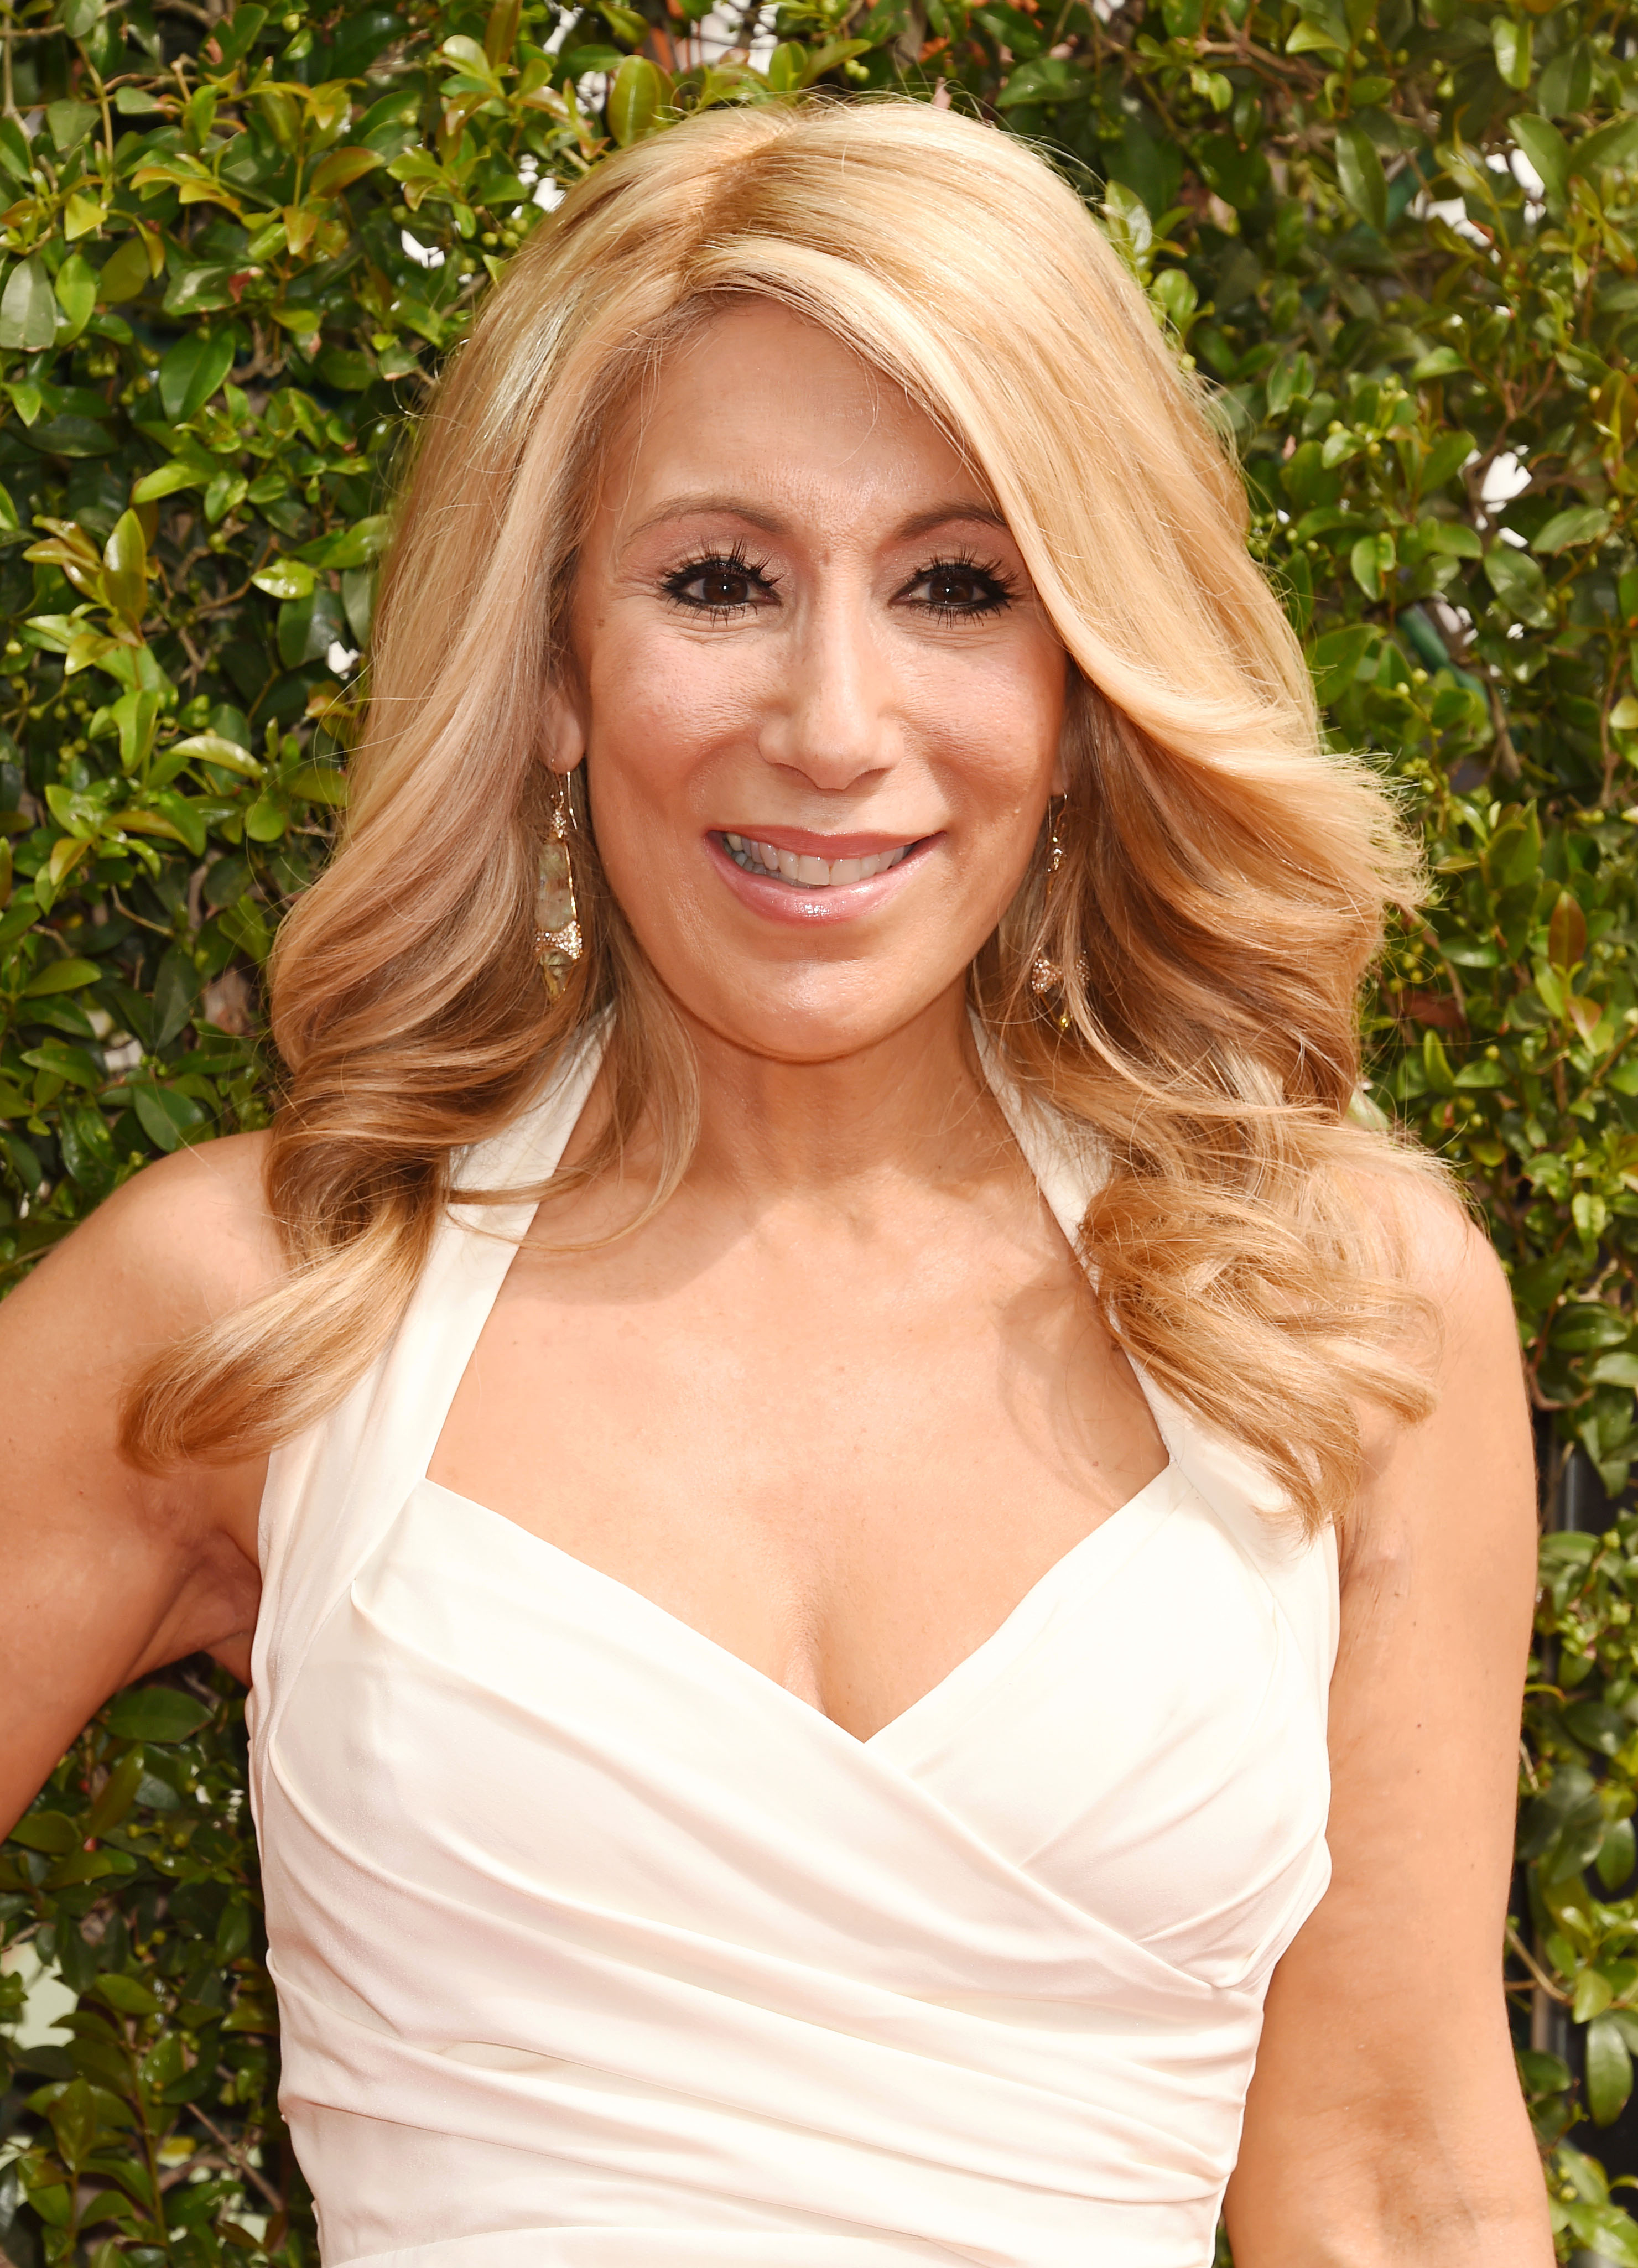 Lori Greiner at the 2015 Creative Arts Emmy Awards in Los Angeles on Sept. 12, 2015.